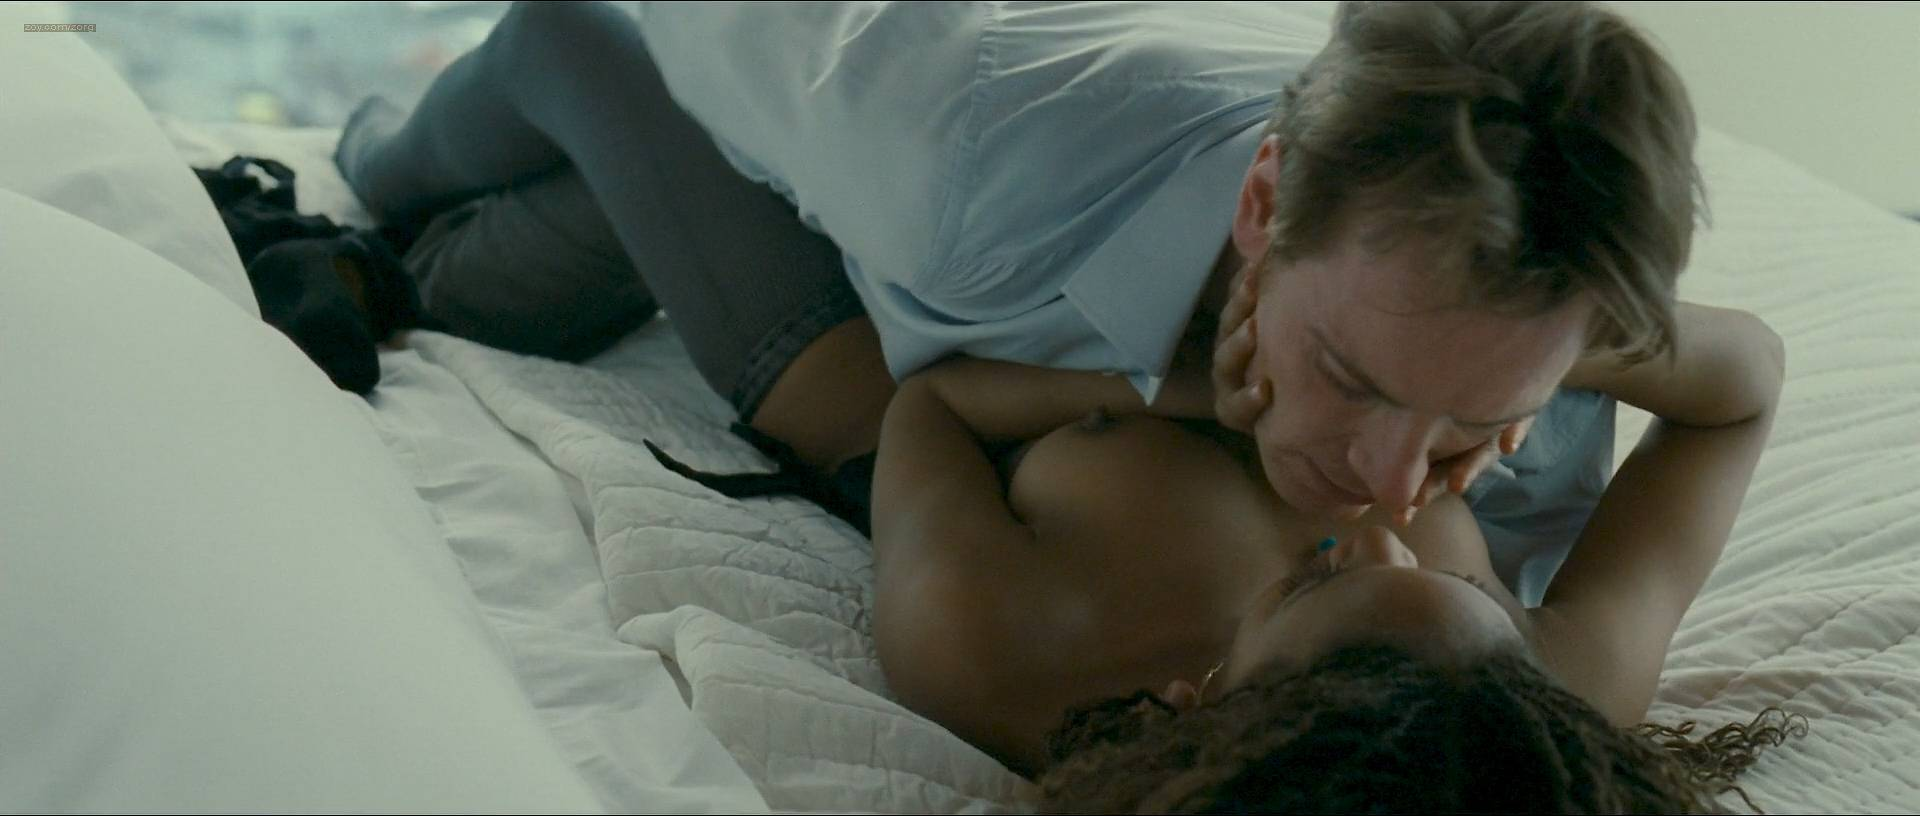 Carey Mulligan nude full frontal Nicole Beharie Amy Hargreaves and other's all nude in - Shame (2011) HD 1080p (10)